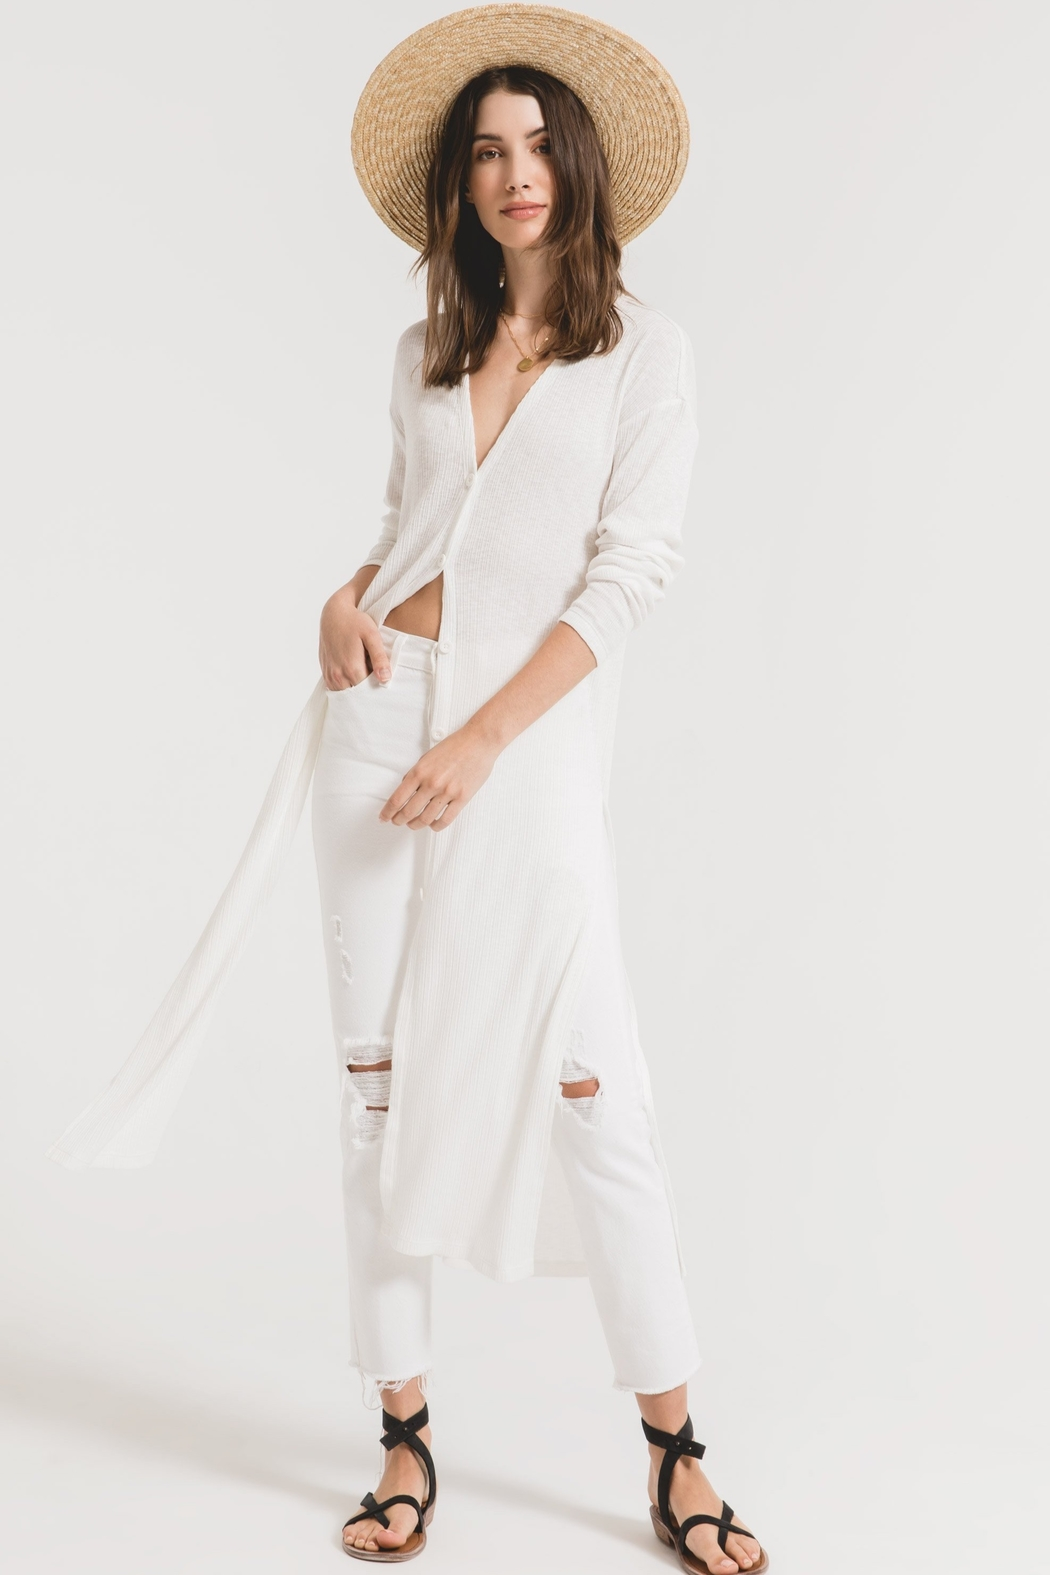 z supply Textured Rib Duster Cardigan - Front Full Image